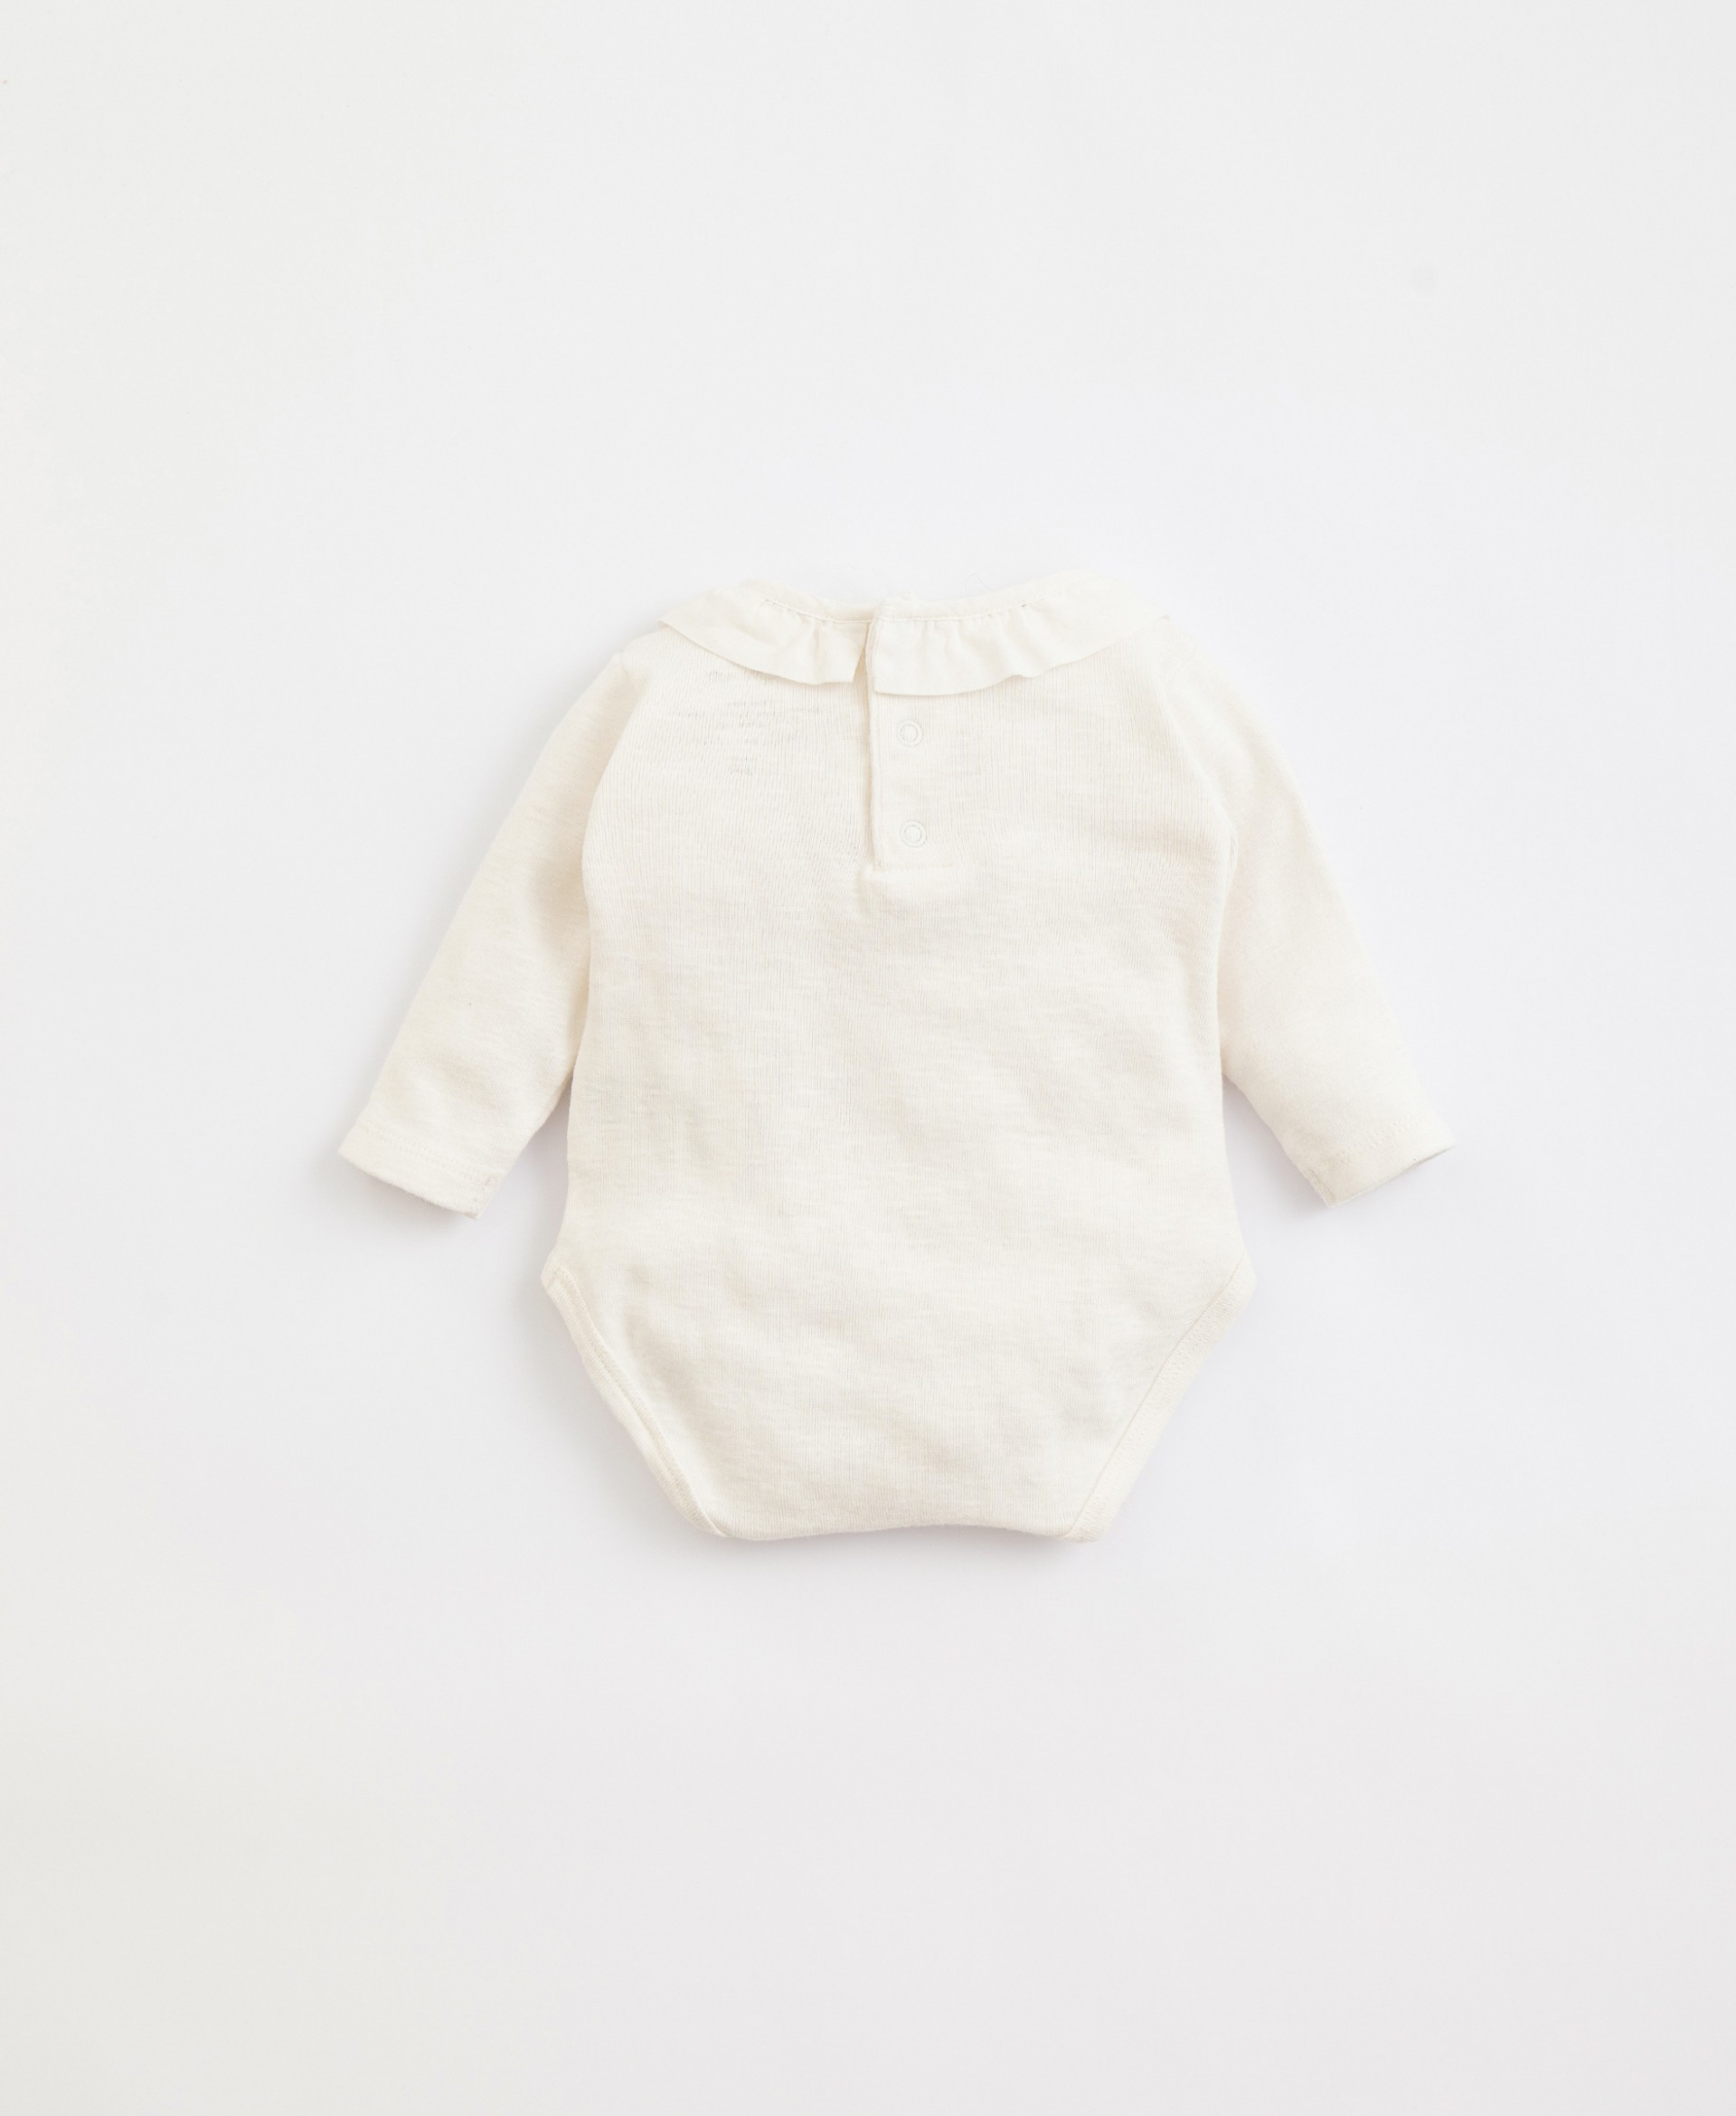 Body in organic cotton with metal clip opening | Illustration